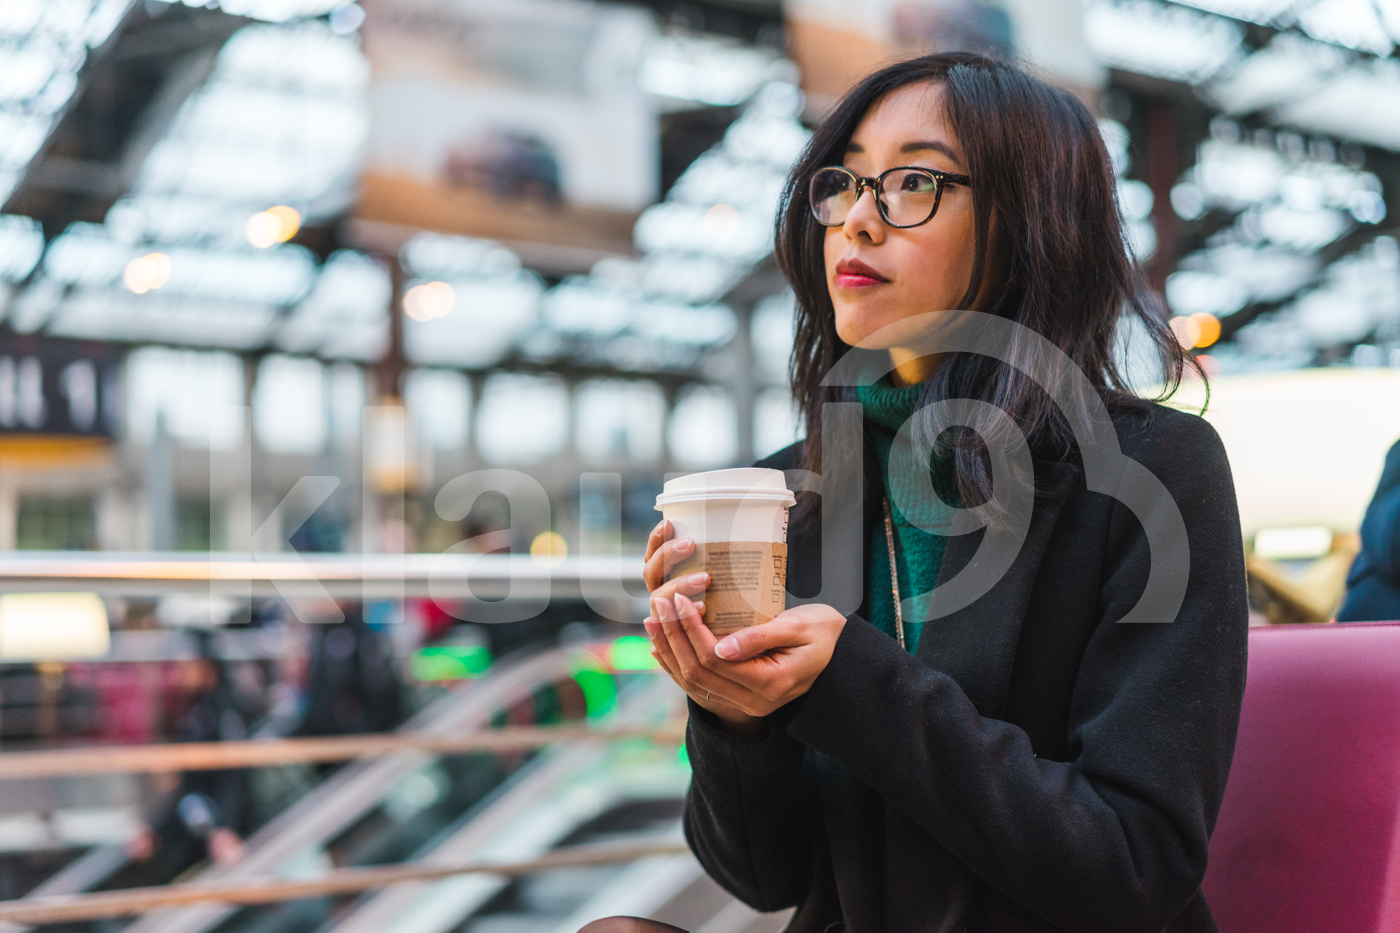 Young adult Asian woman sitting in a train station and holding coffee cup